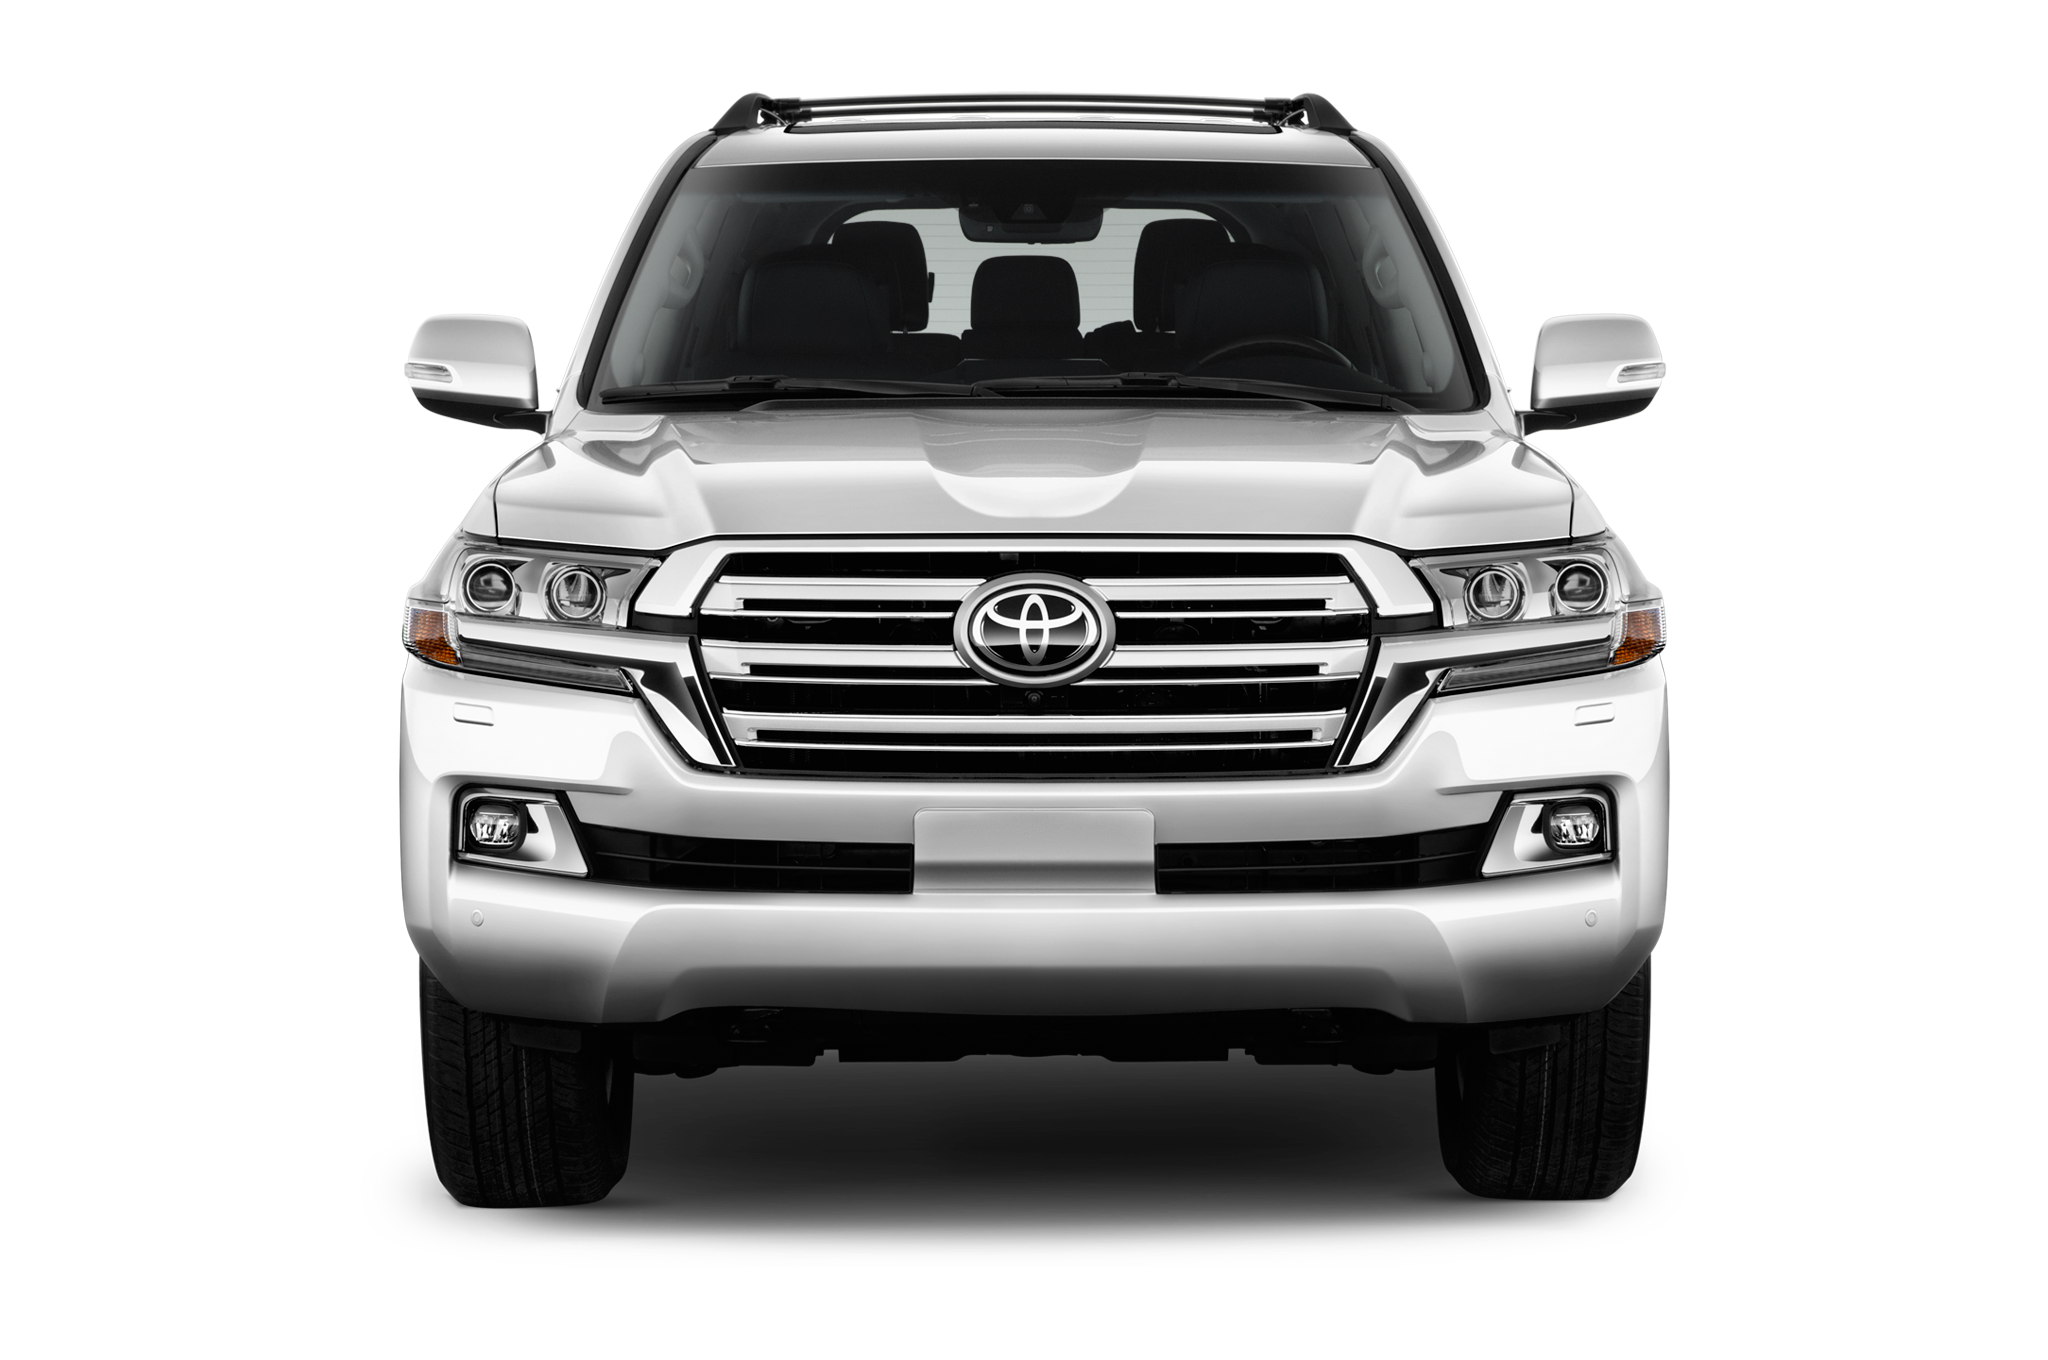 Toyota Land Cruiser Backgrounds, Compatible - PC, Mobile, Gadgets| 2048x1360 px